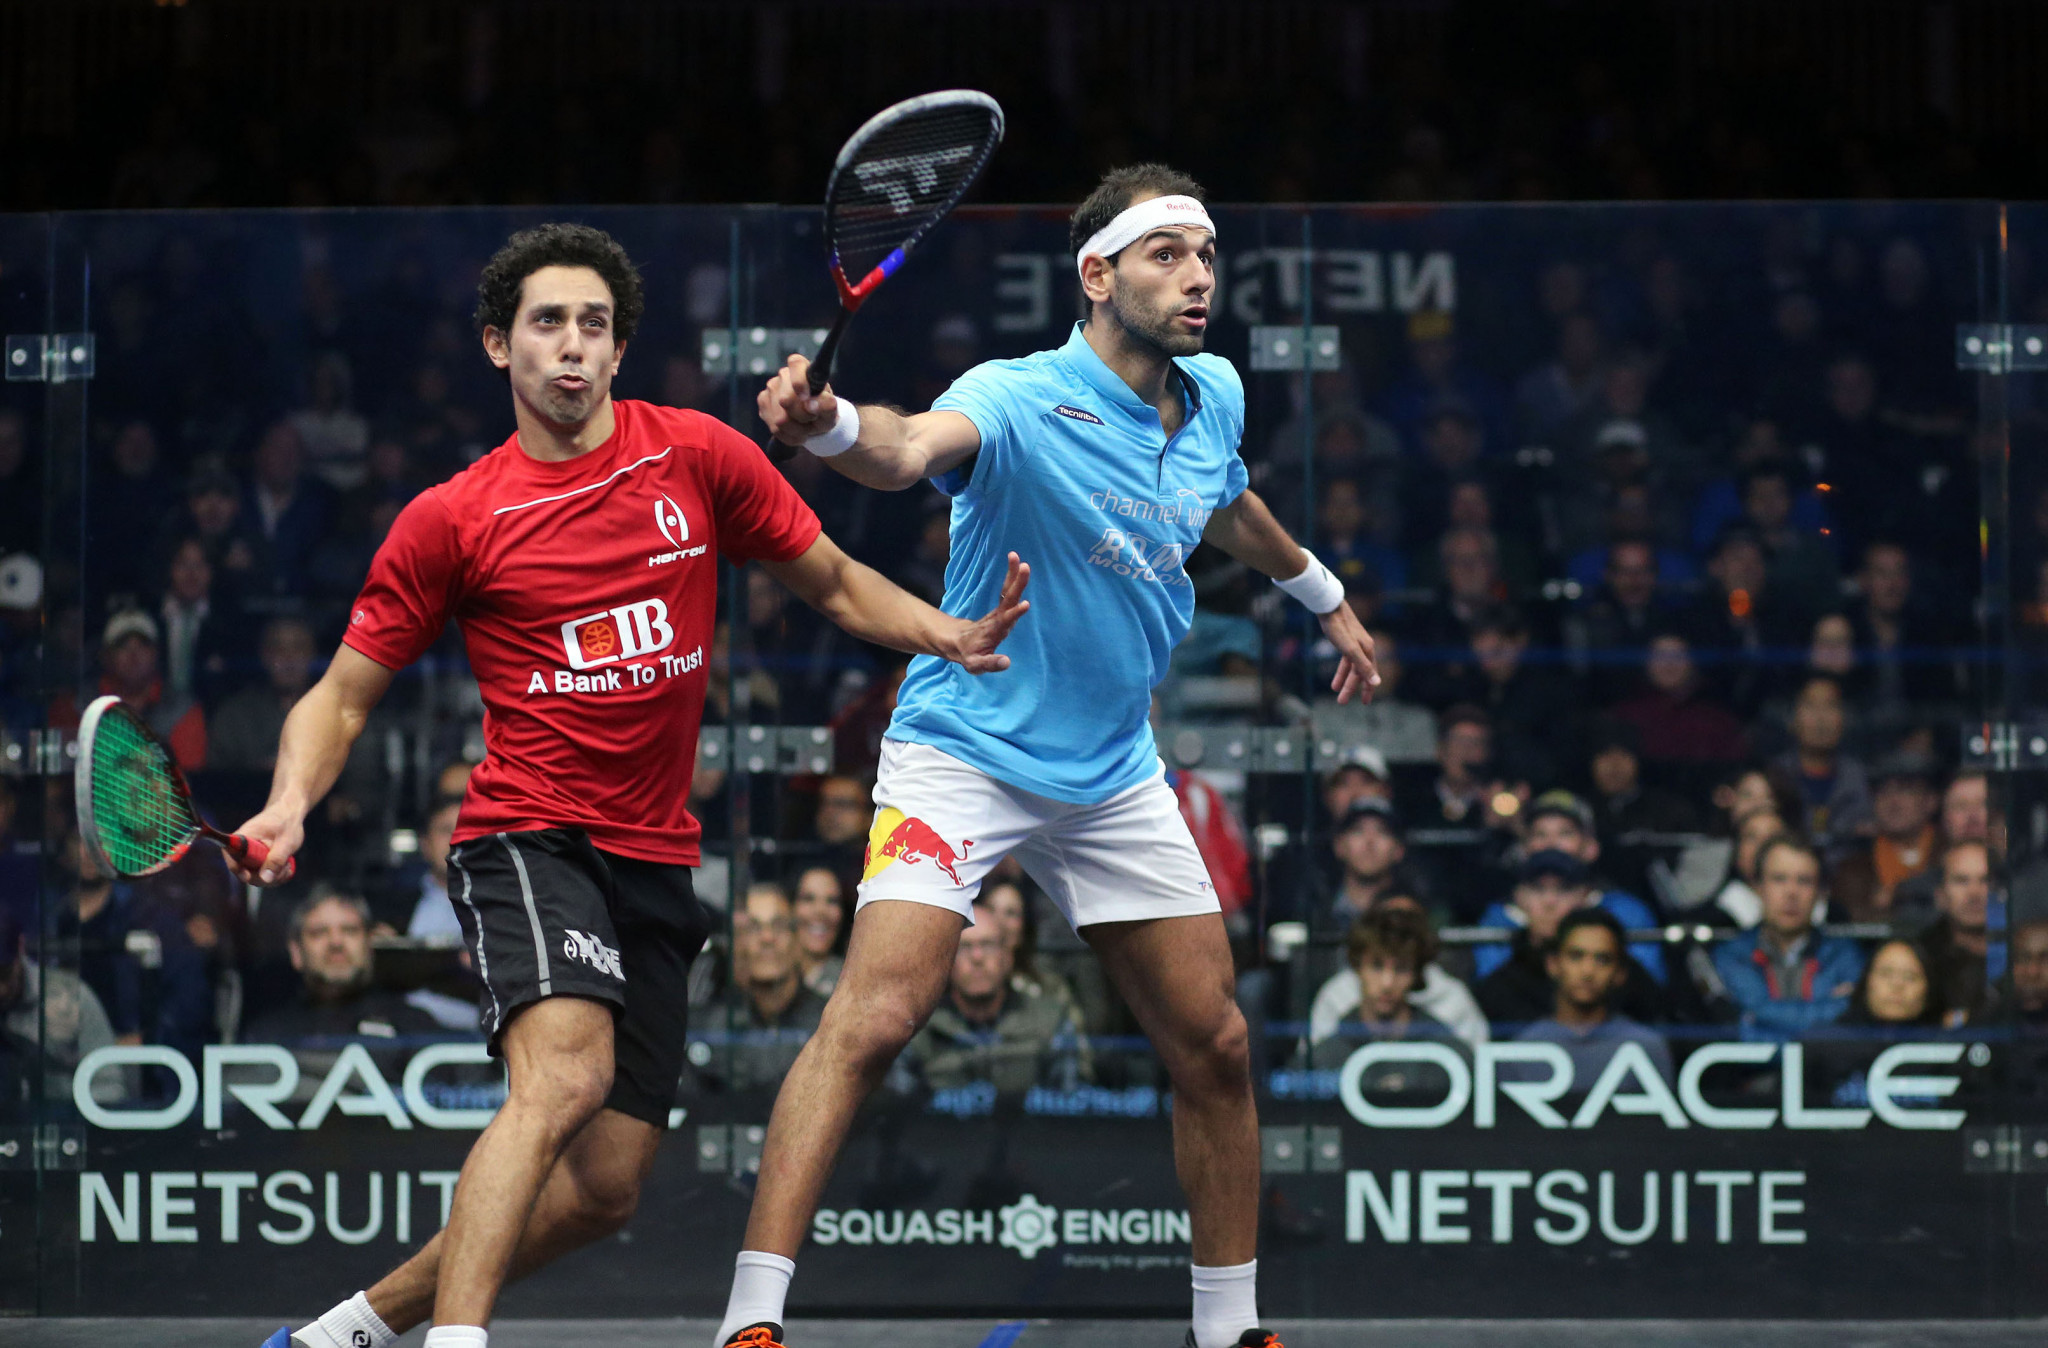 World number one Mohamed ElShorbagy won a second Oracle Netsuite Open title in San Francisco ©PSA